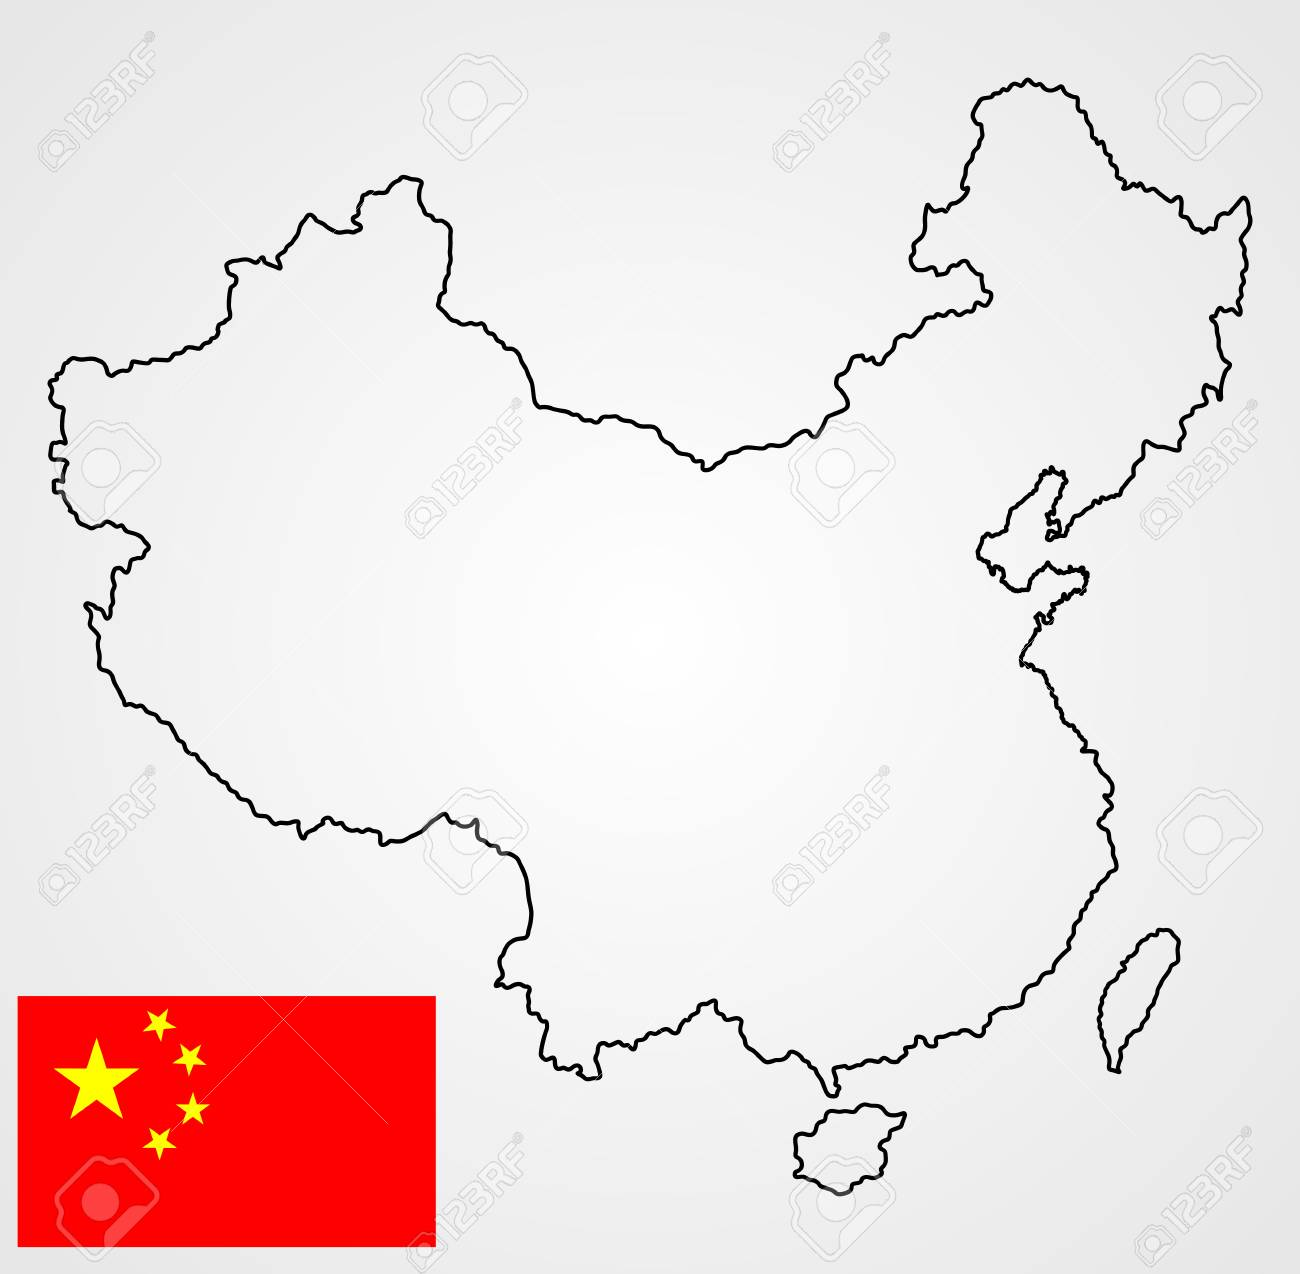 Map Of Peopleu0027s Republic Of China In Vector Contour And Vector Flag  Isolated On Background.